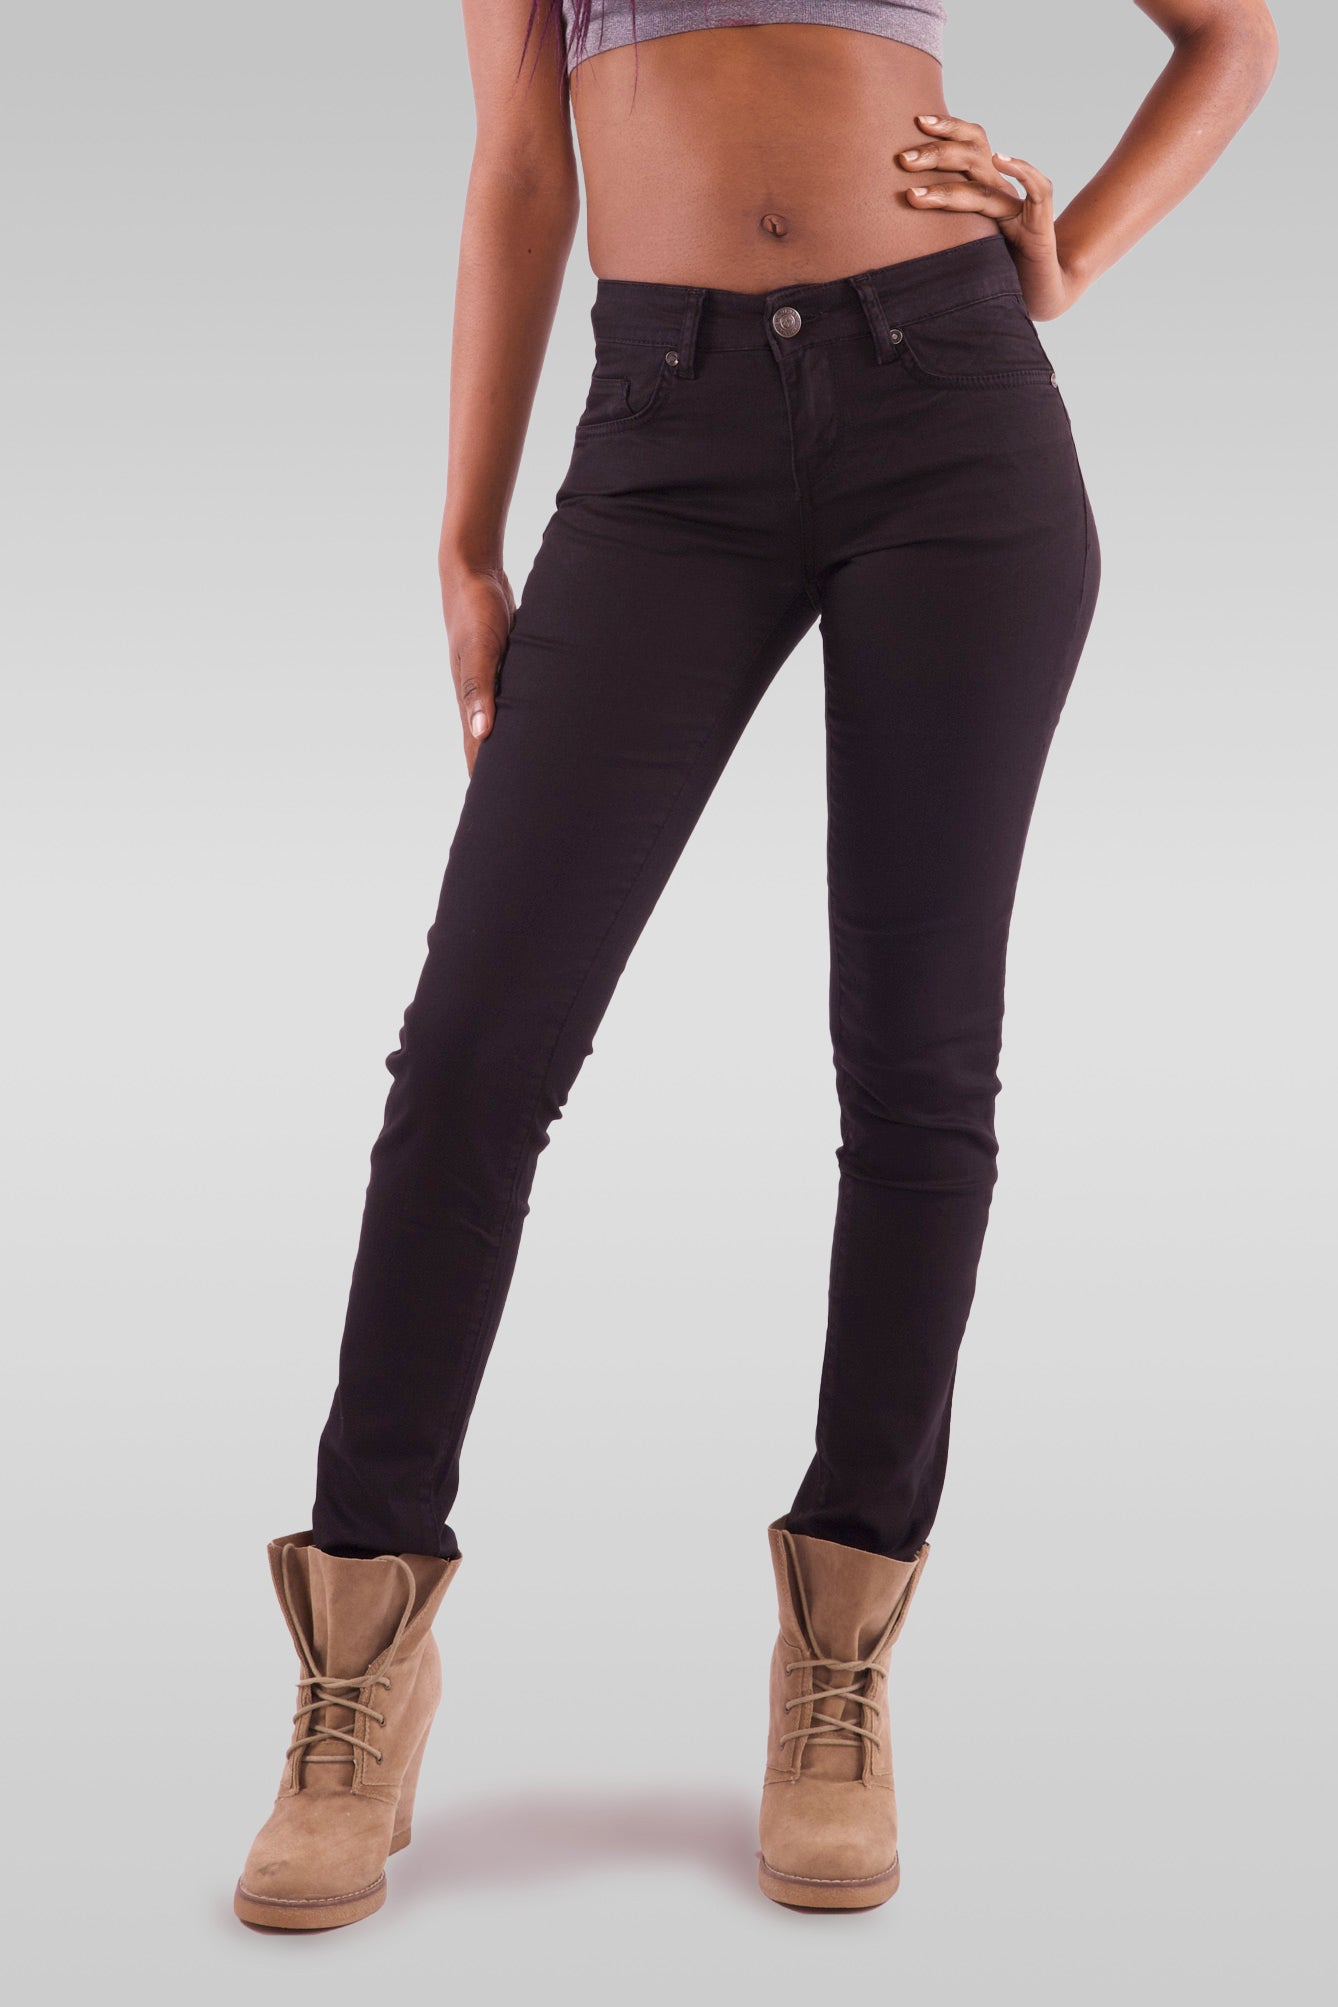 Women Slim Fit Black Jeans - Hillmarten